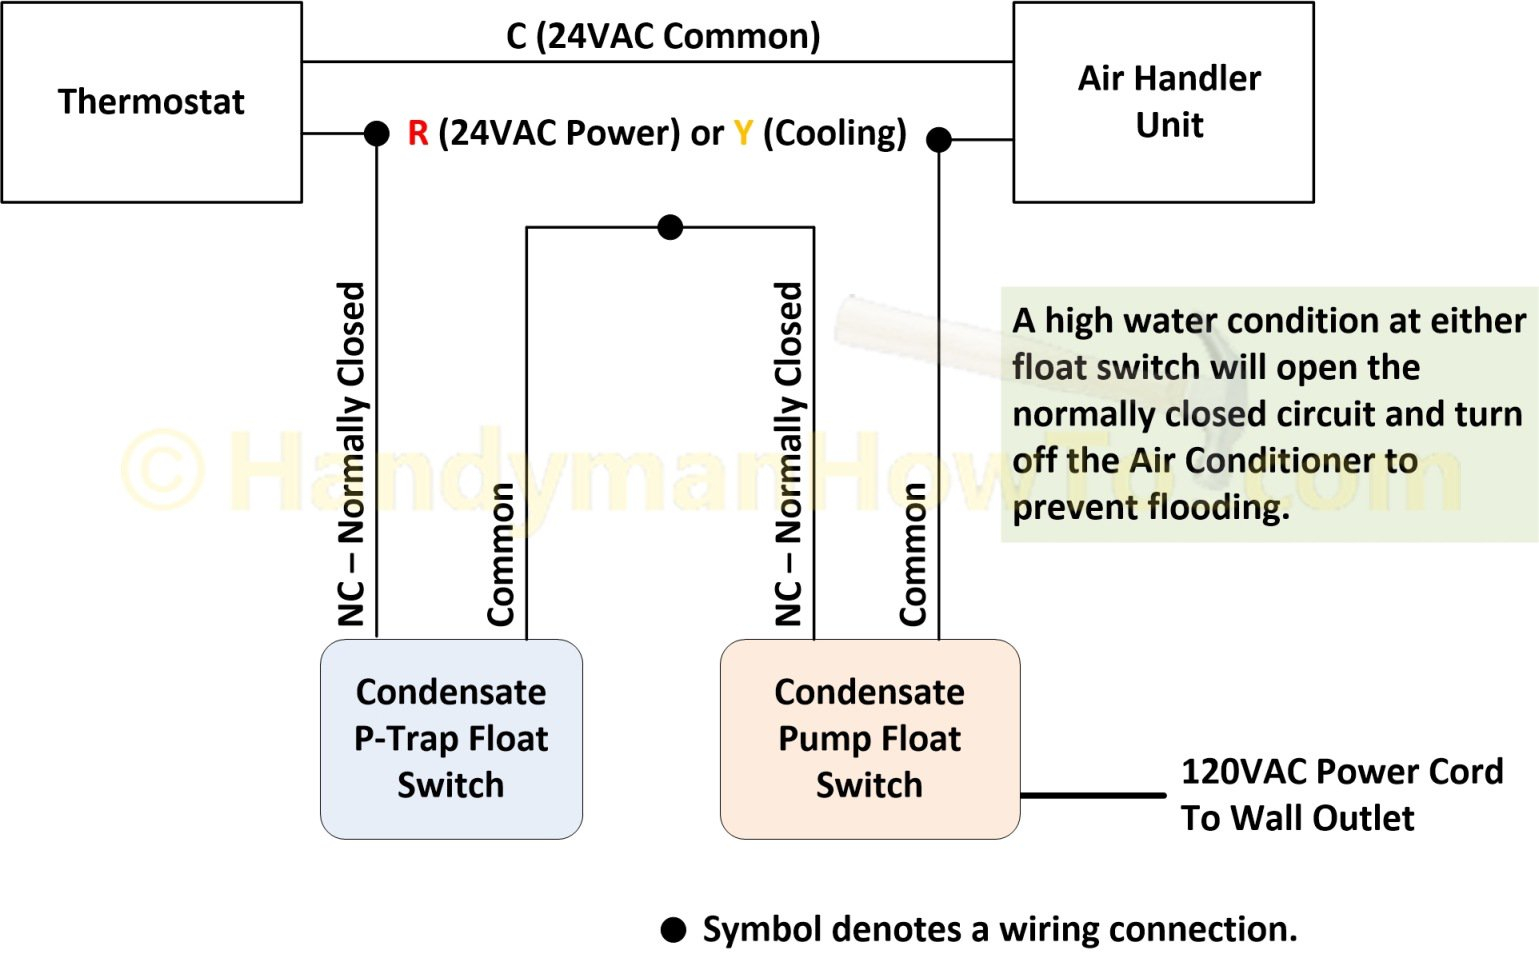 ac low voltage wiring diagram Download-Air Conditioner P Trap Float Switch and Condensate Pump Wiring Diagram 5-i